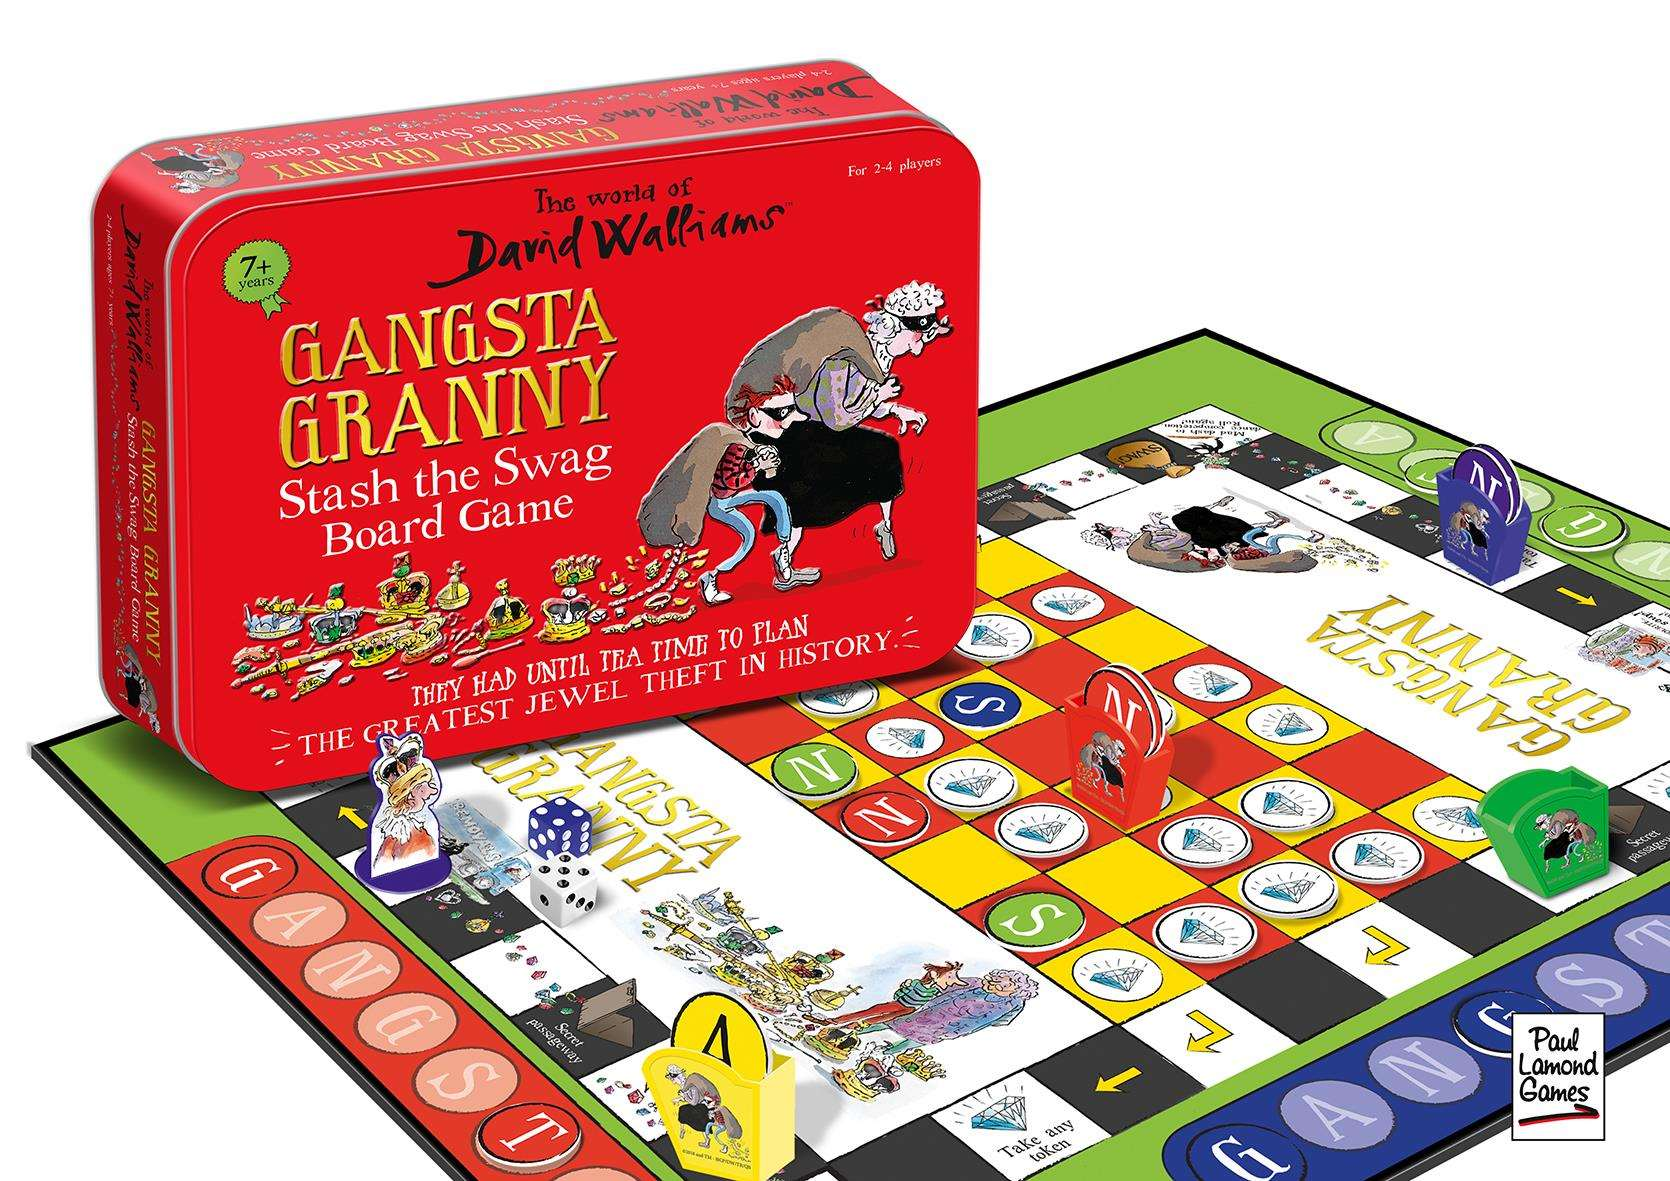 A board game based on the popular children's book Gangsta Granny has made the top 25